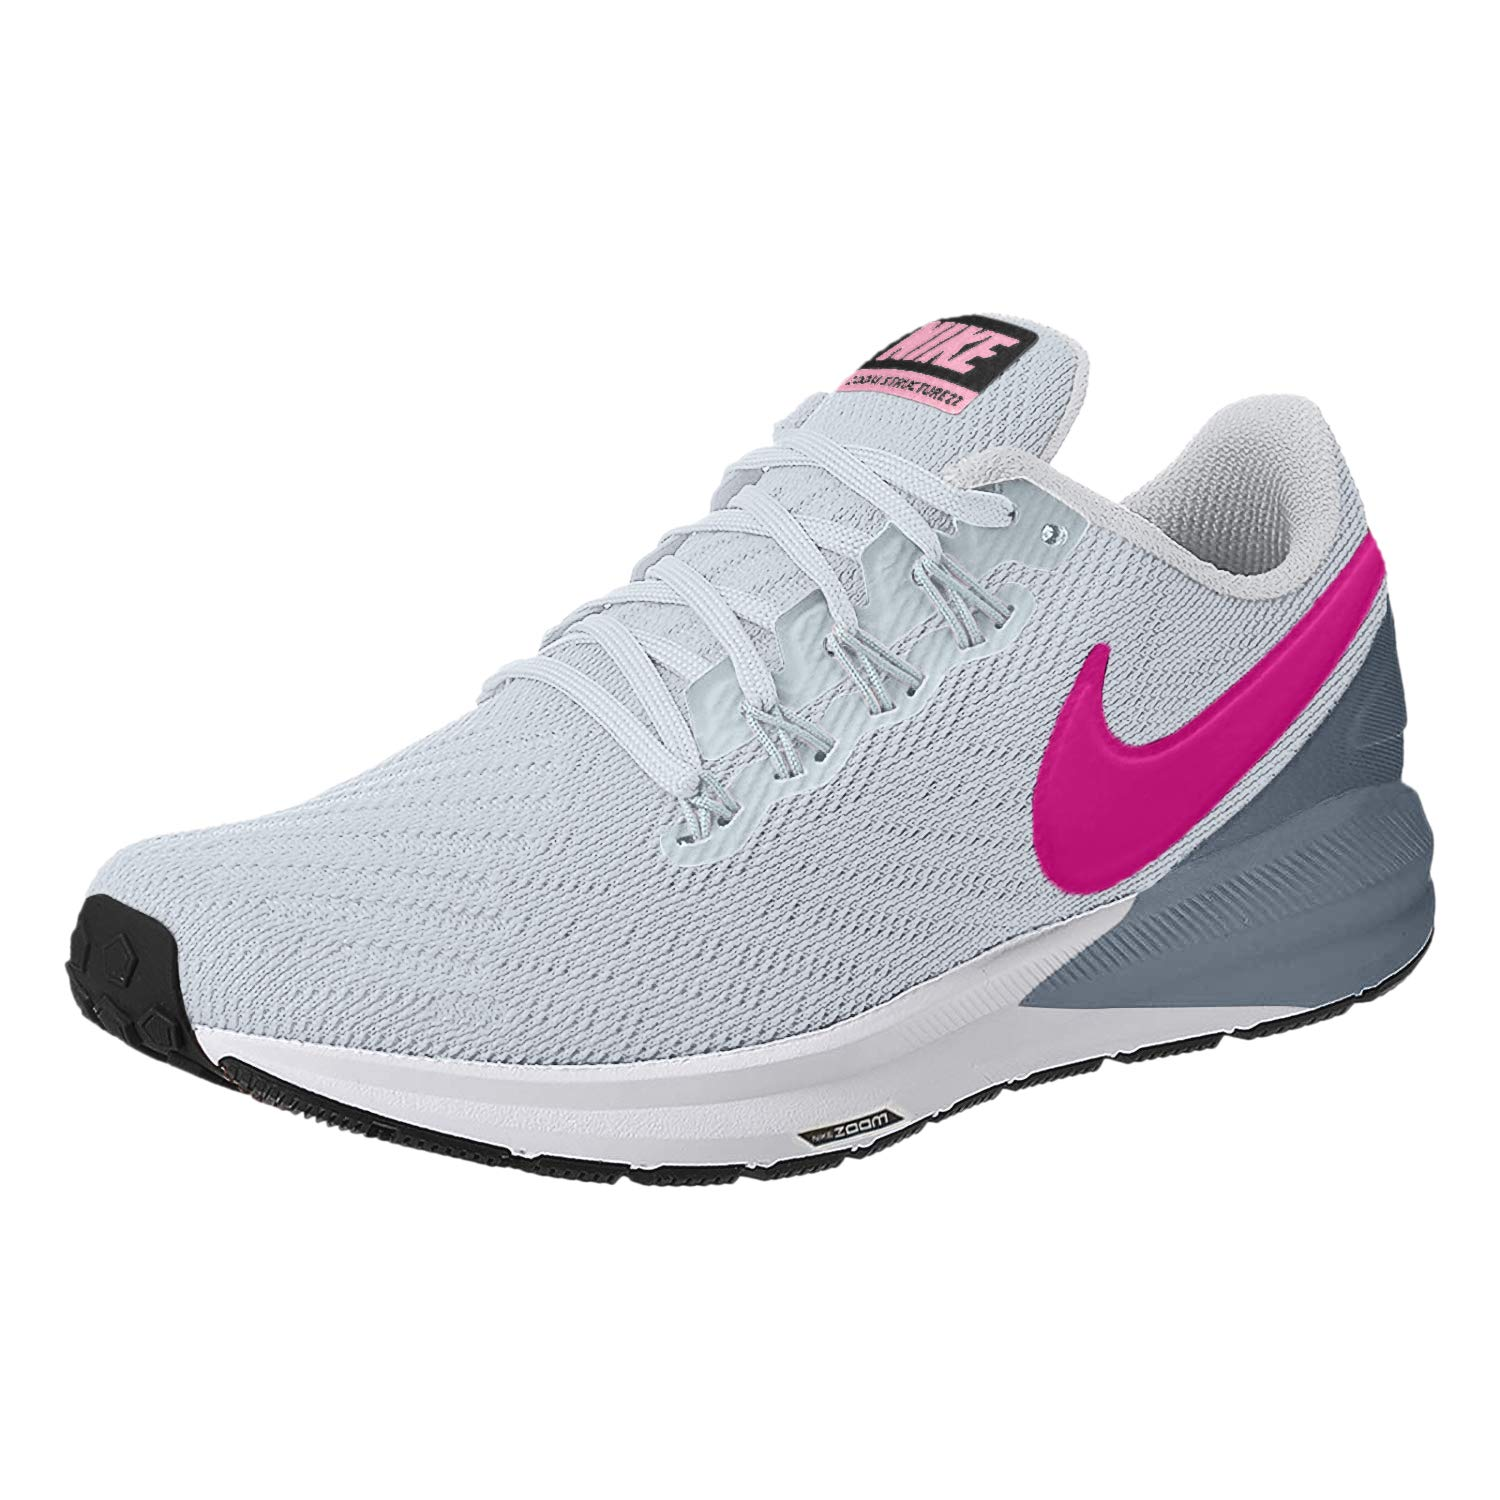 Air Zoom Structure 22 Running Shoe